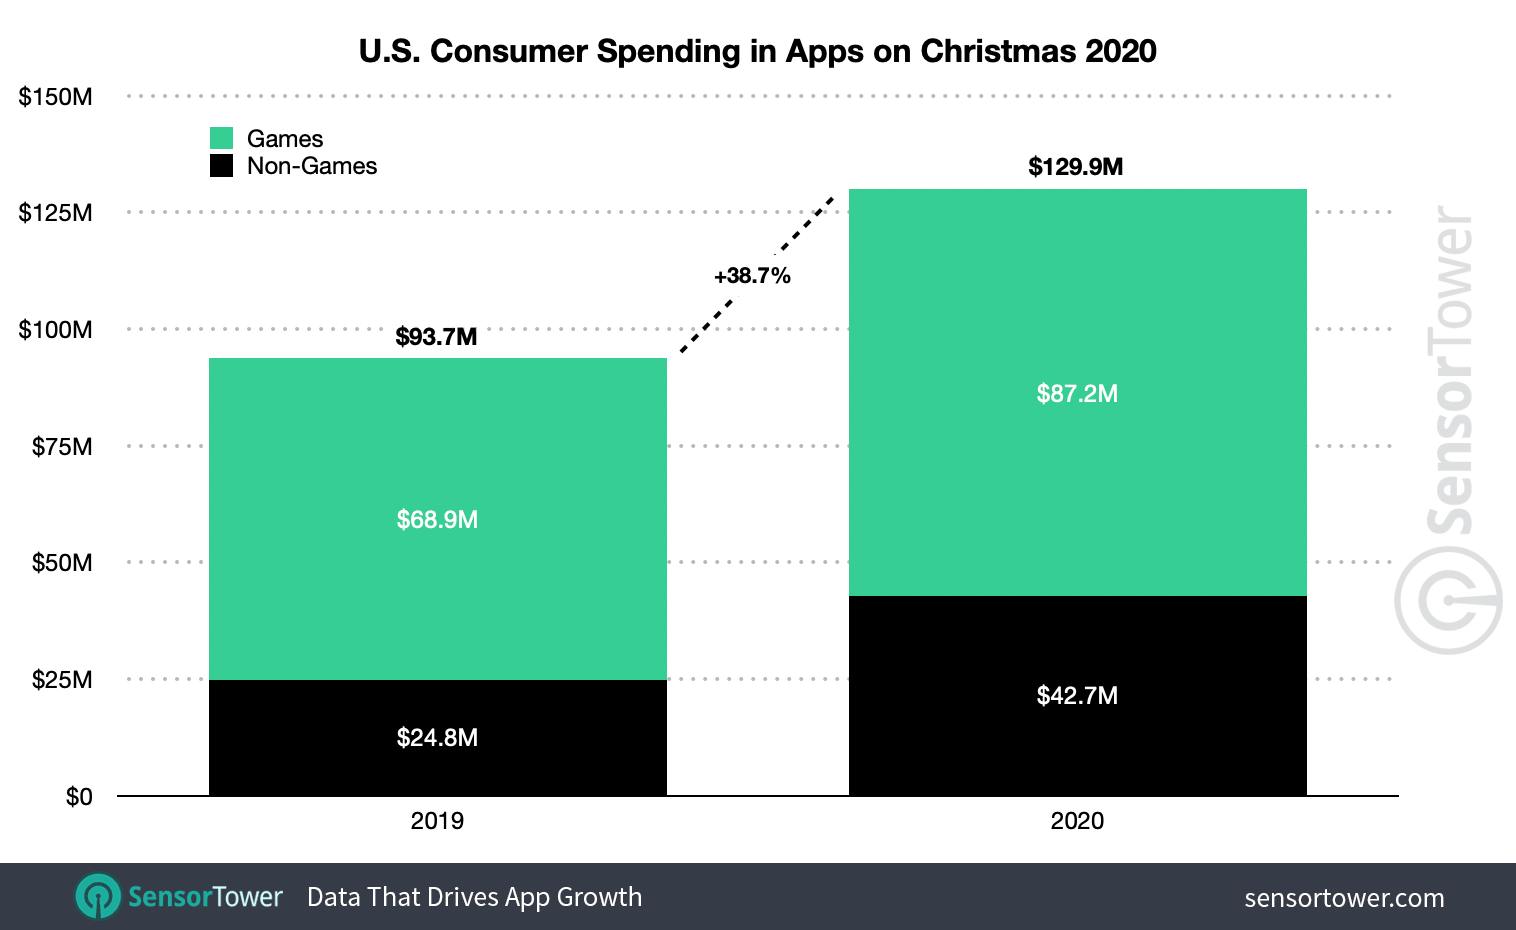 U.S. consumer spending on mobile apps reached nearly $130 million this Christmas.